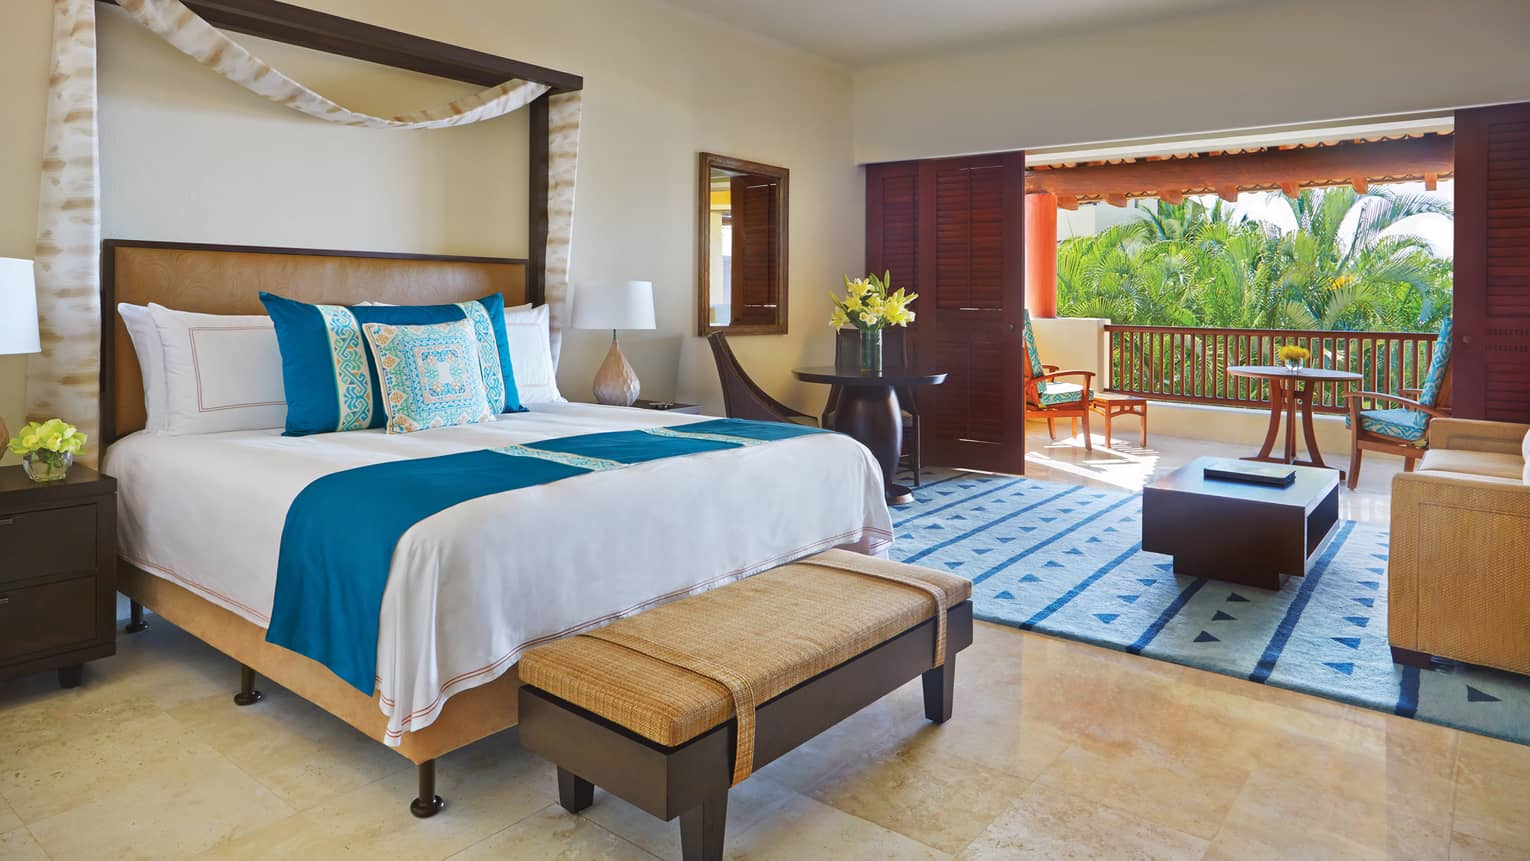 Garden-View Casita bed with blue-and-yellow Mexican print pillows, living room, sliding wood doors to patio